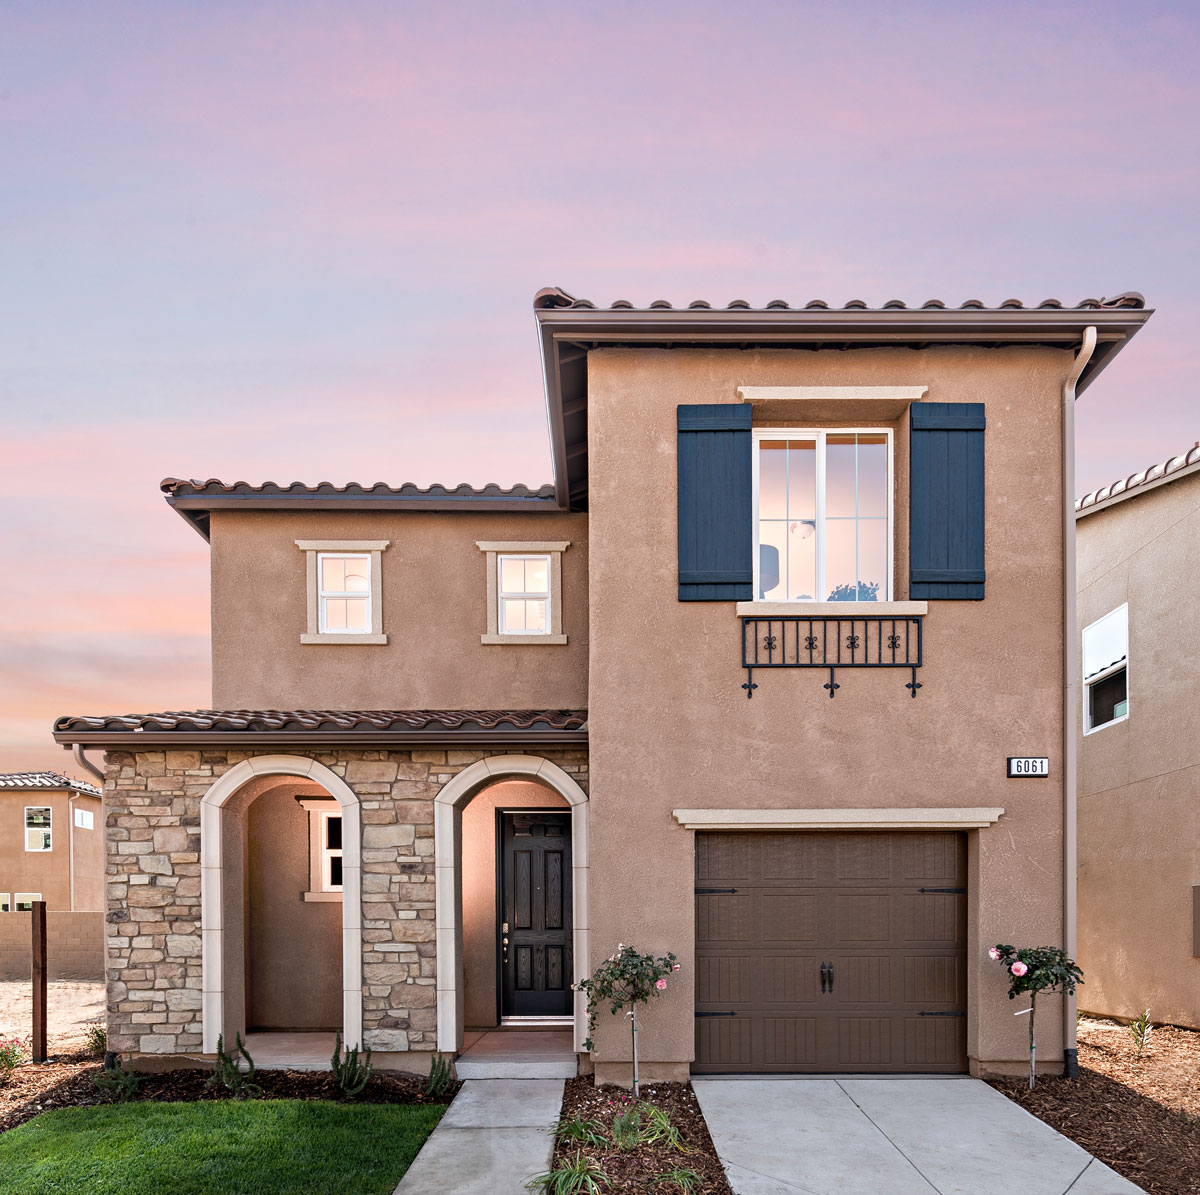 Lineage 1209 Sq. Ft + 3 Bed + 2.5 Bath